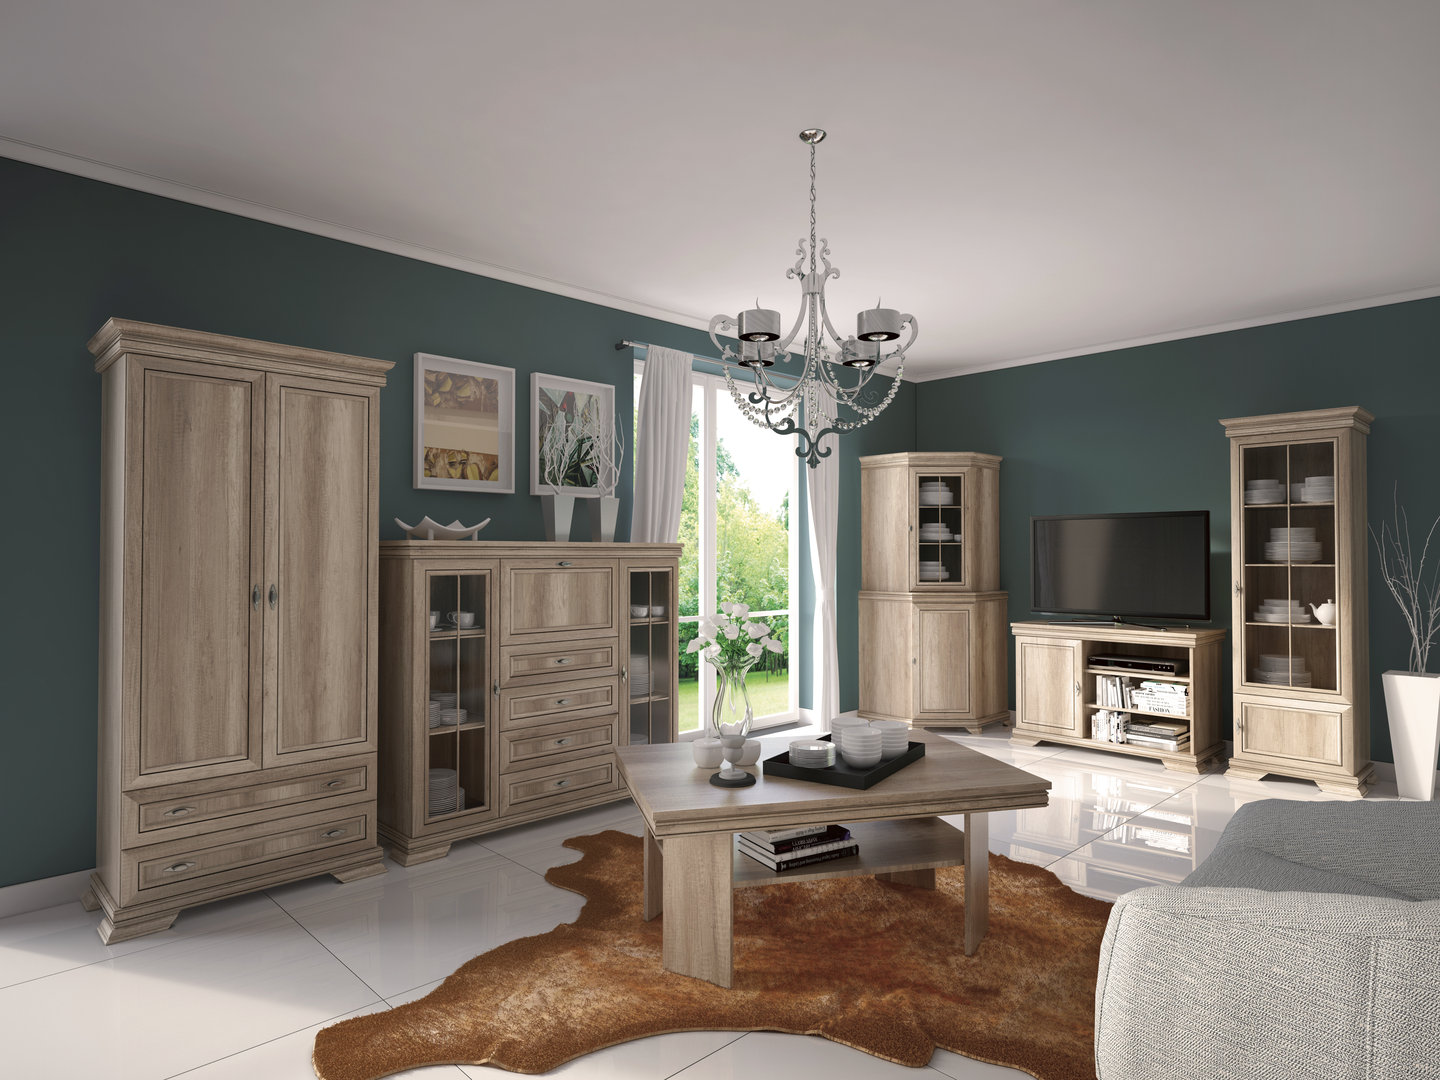 ts m bel vitrine kora krw1 holzfarbe eiche rustikal neu. Black Bedroom Furniture Sets. Home Design Ideas